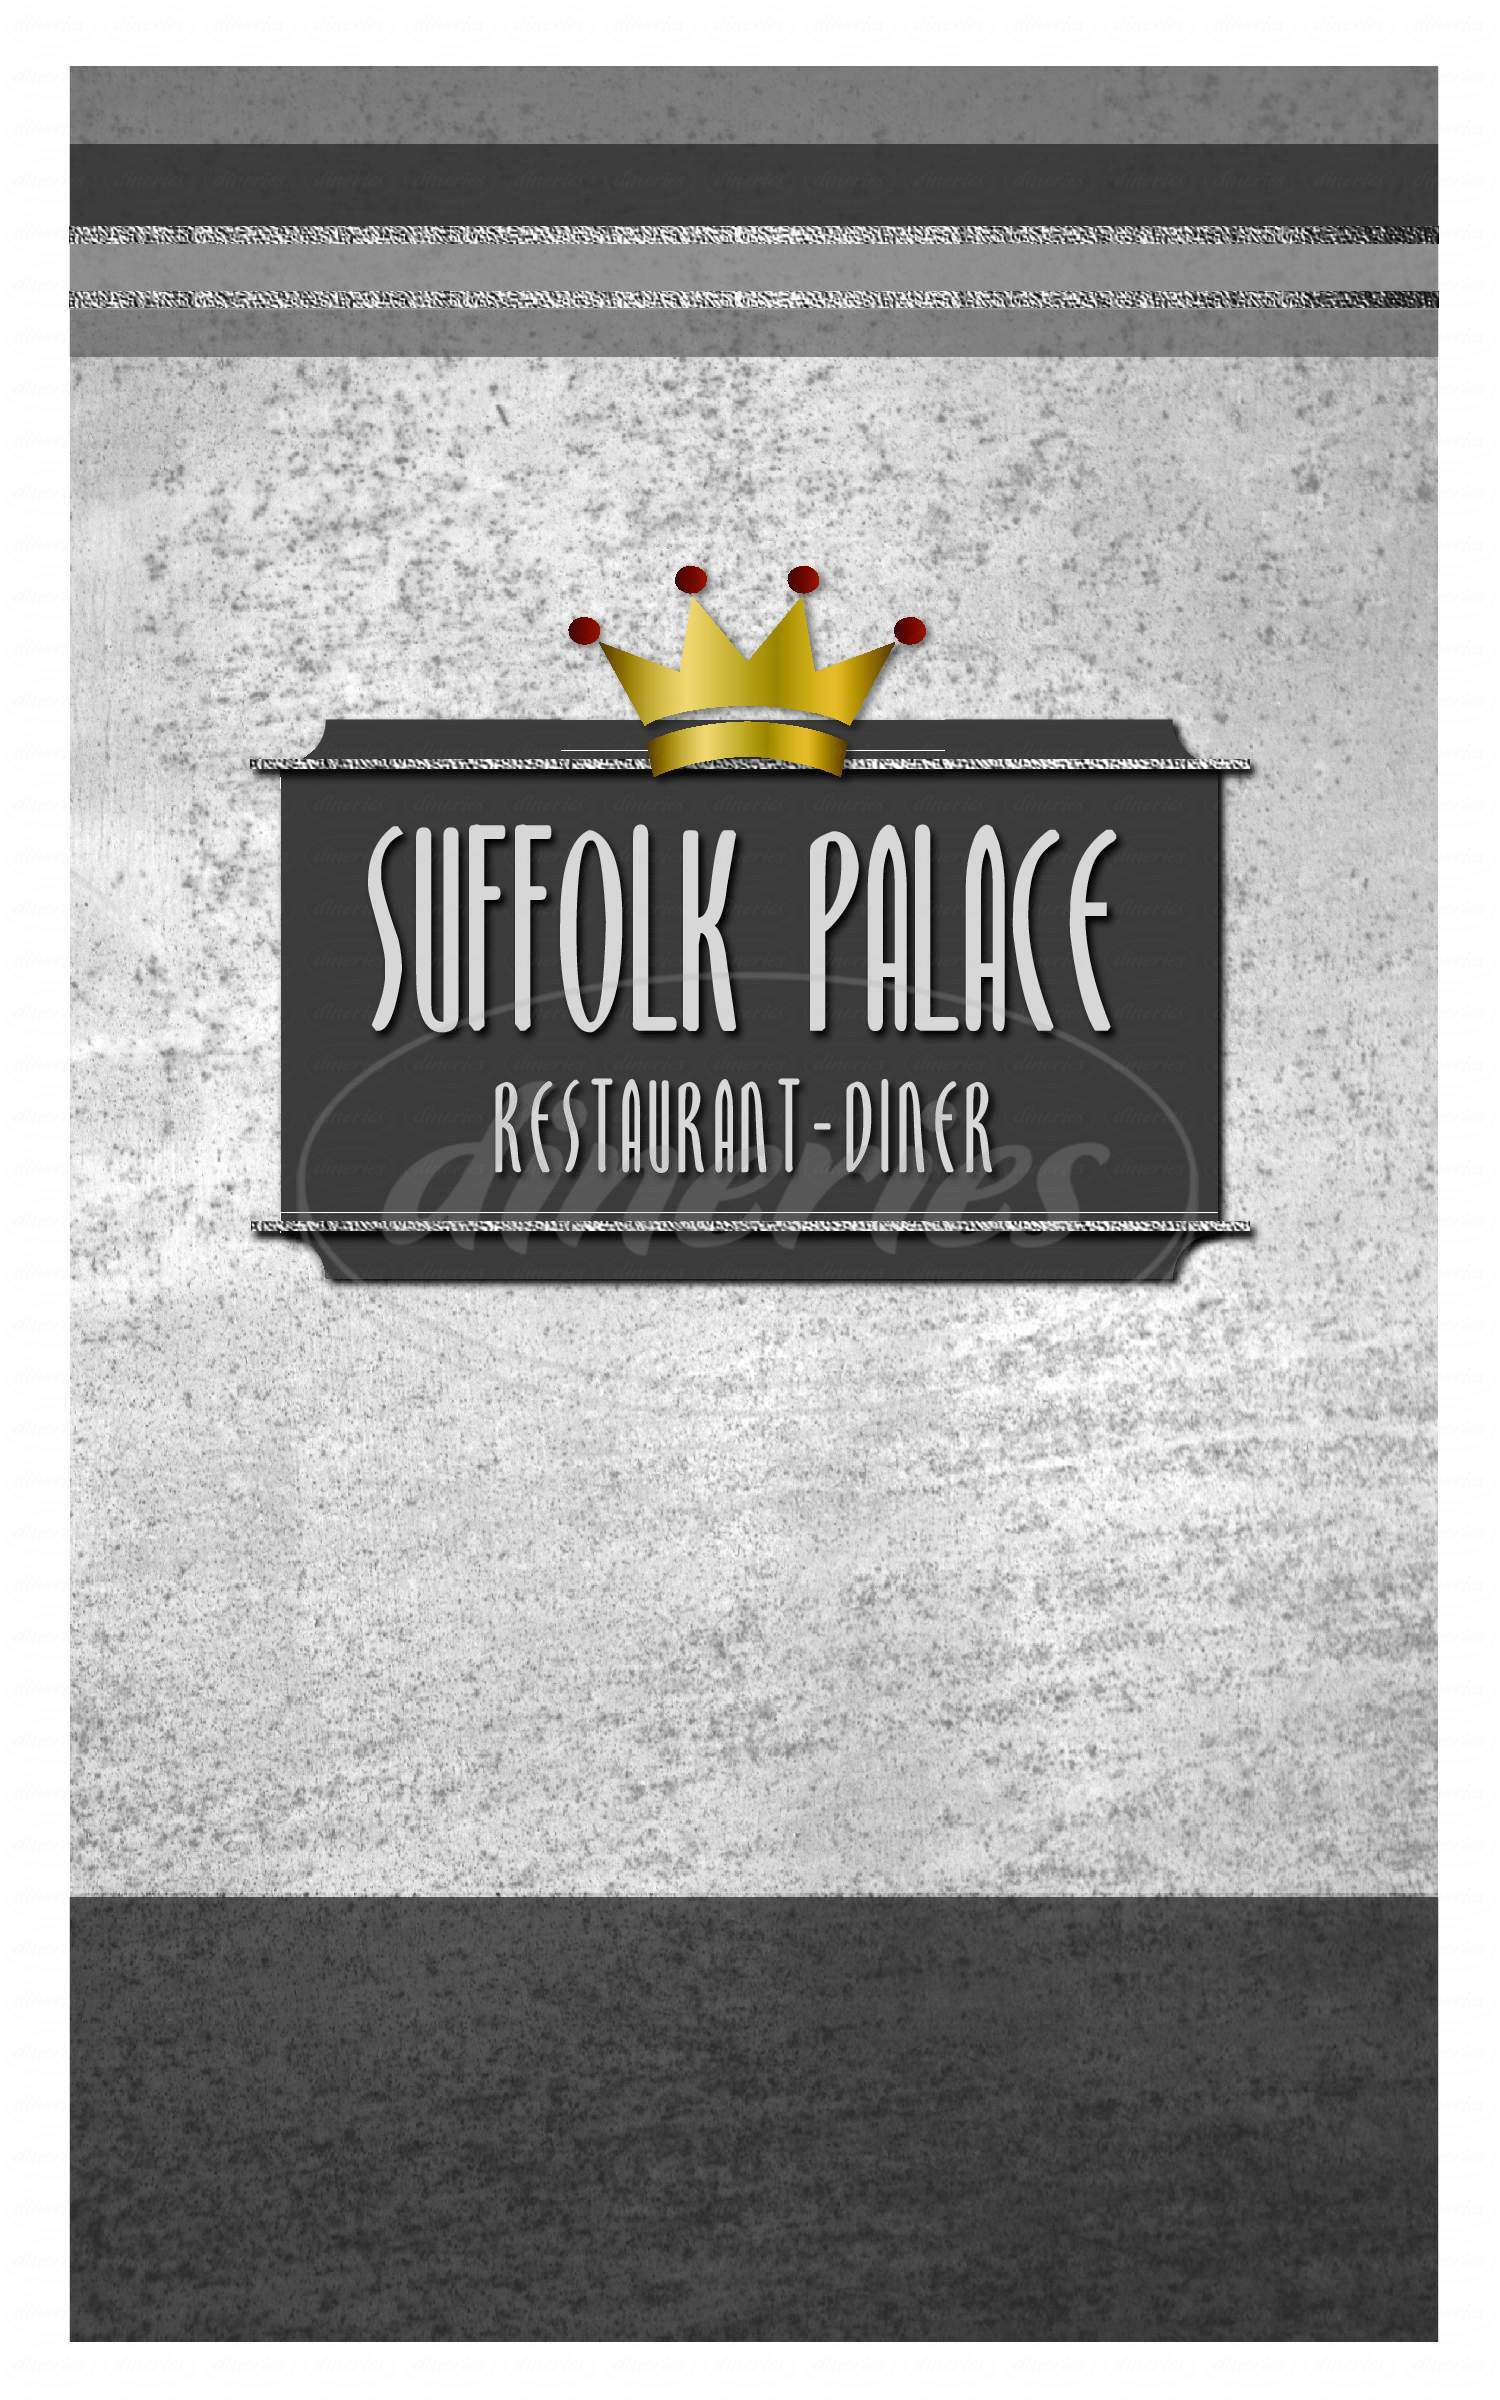 menu for Suffolk Diner